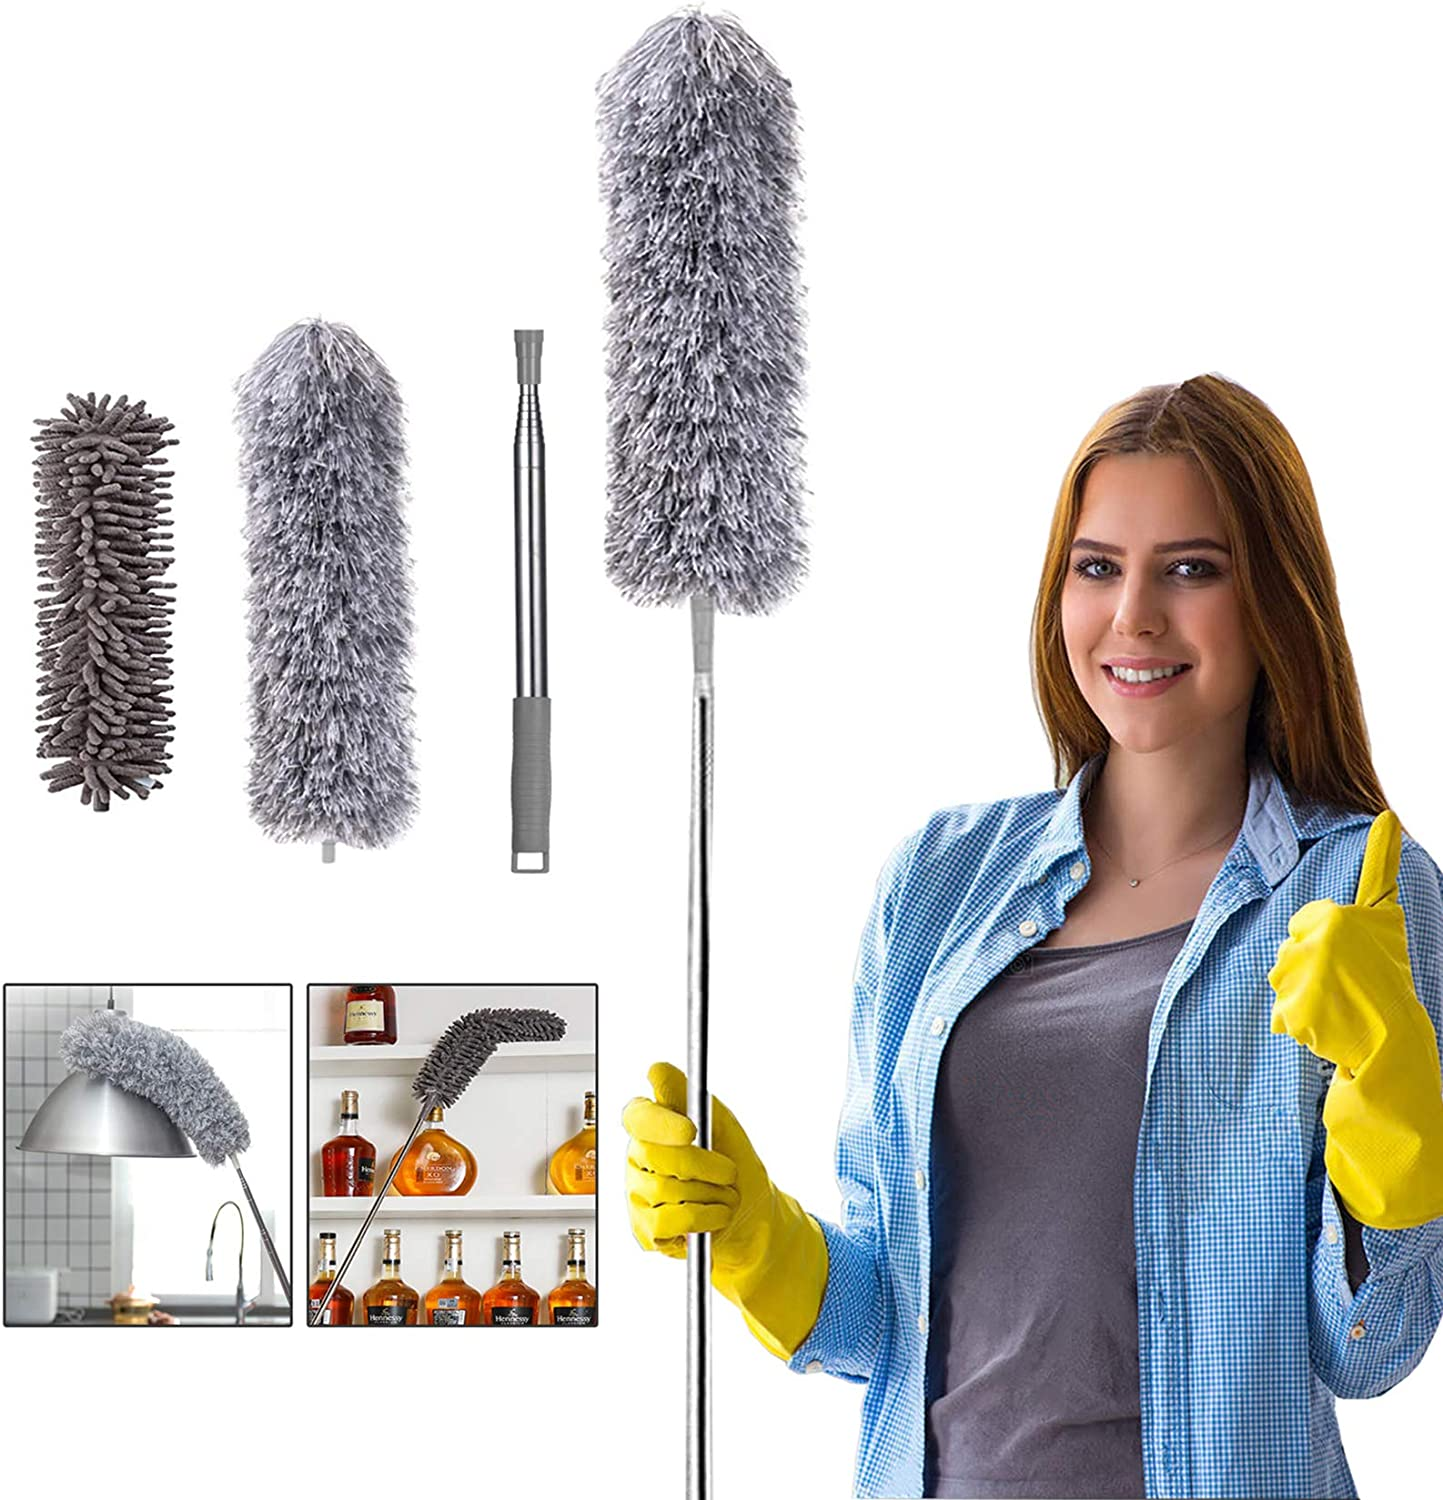 Microfiber Duster for Cleaning, 100